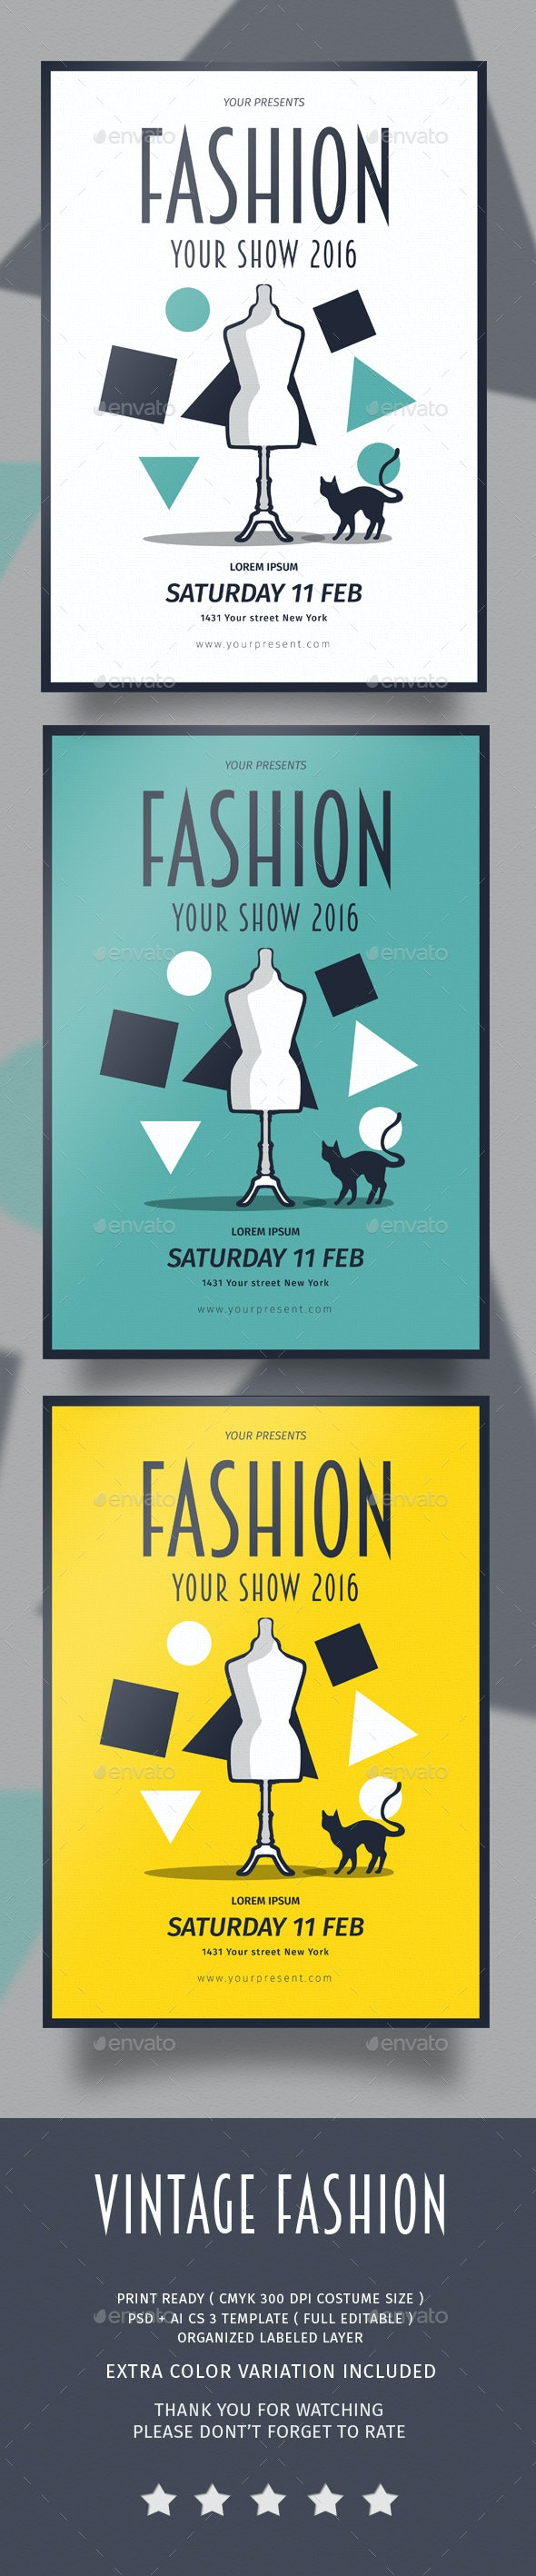 Vintage Fashion Flyer - Flyers Print Templates